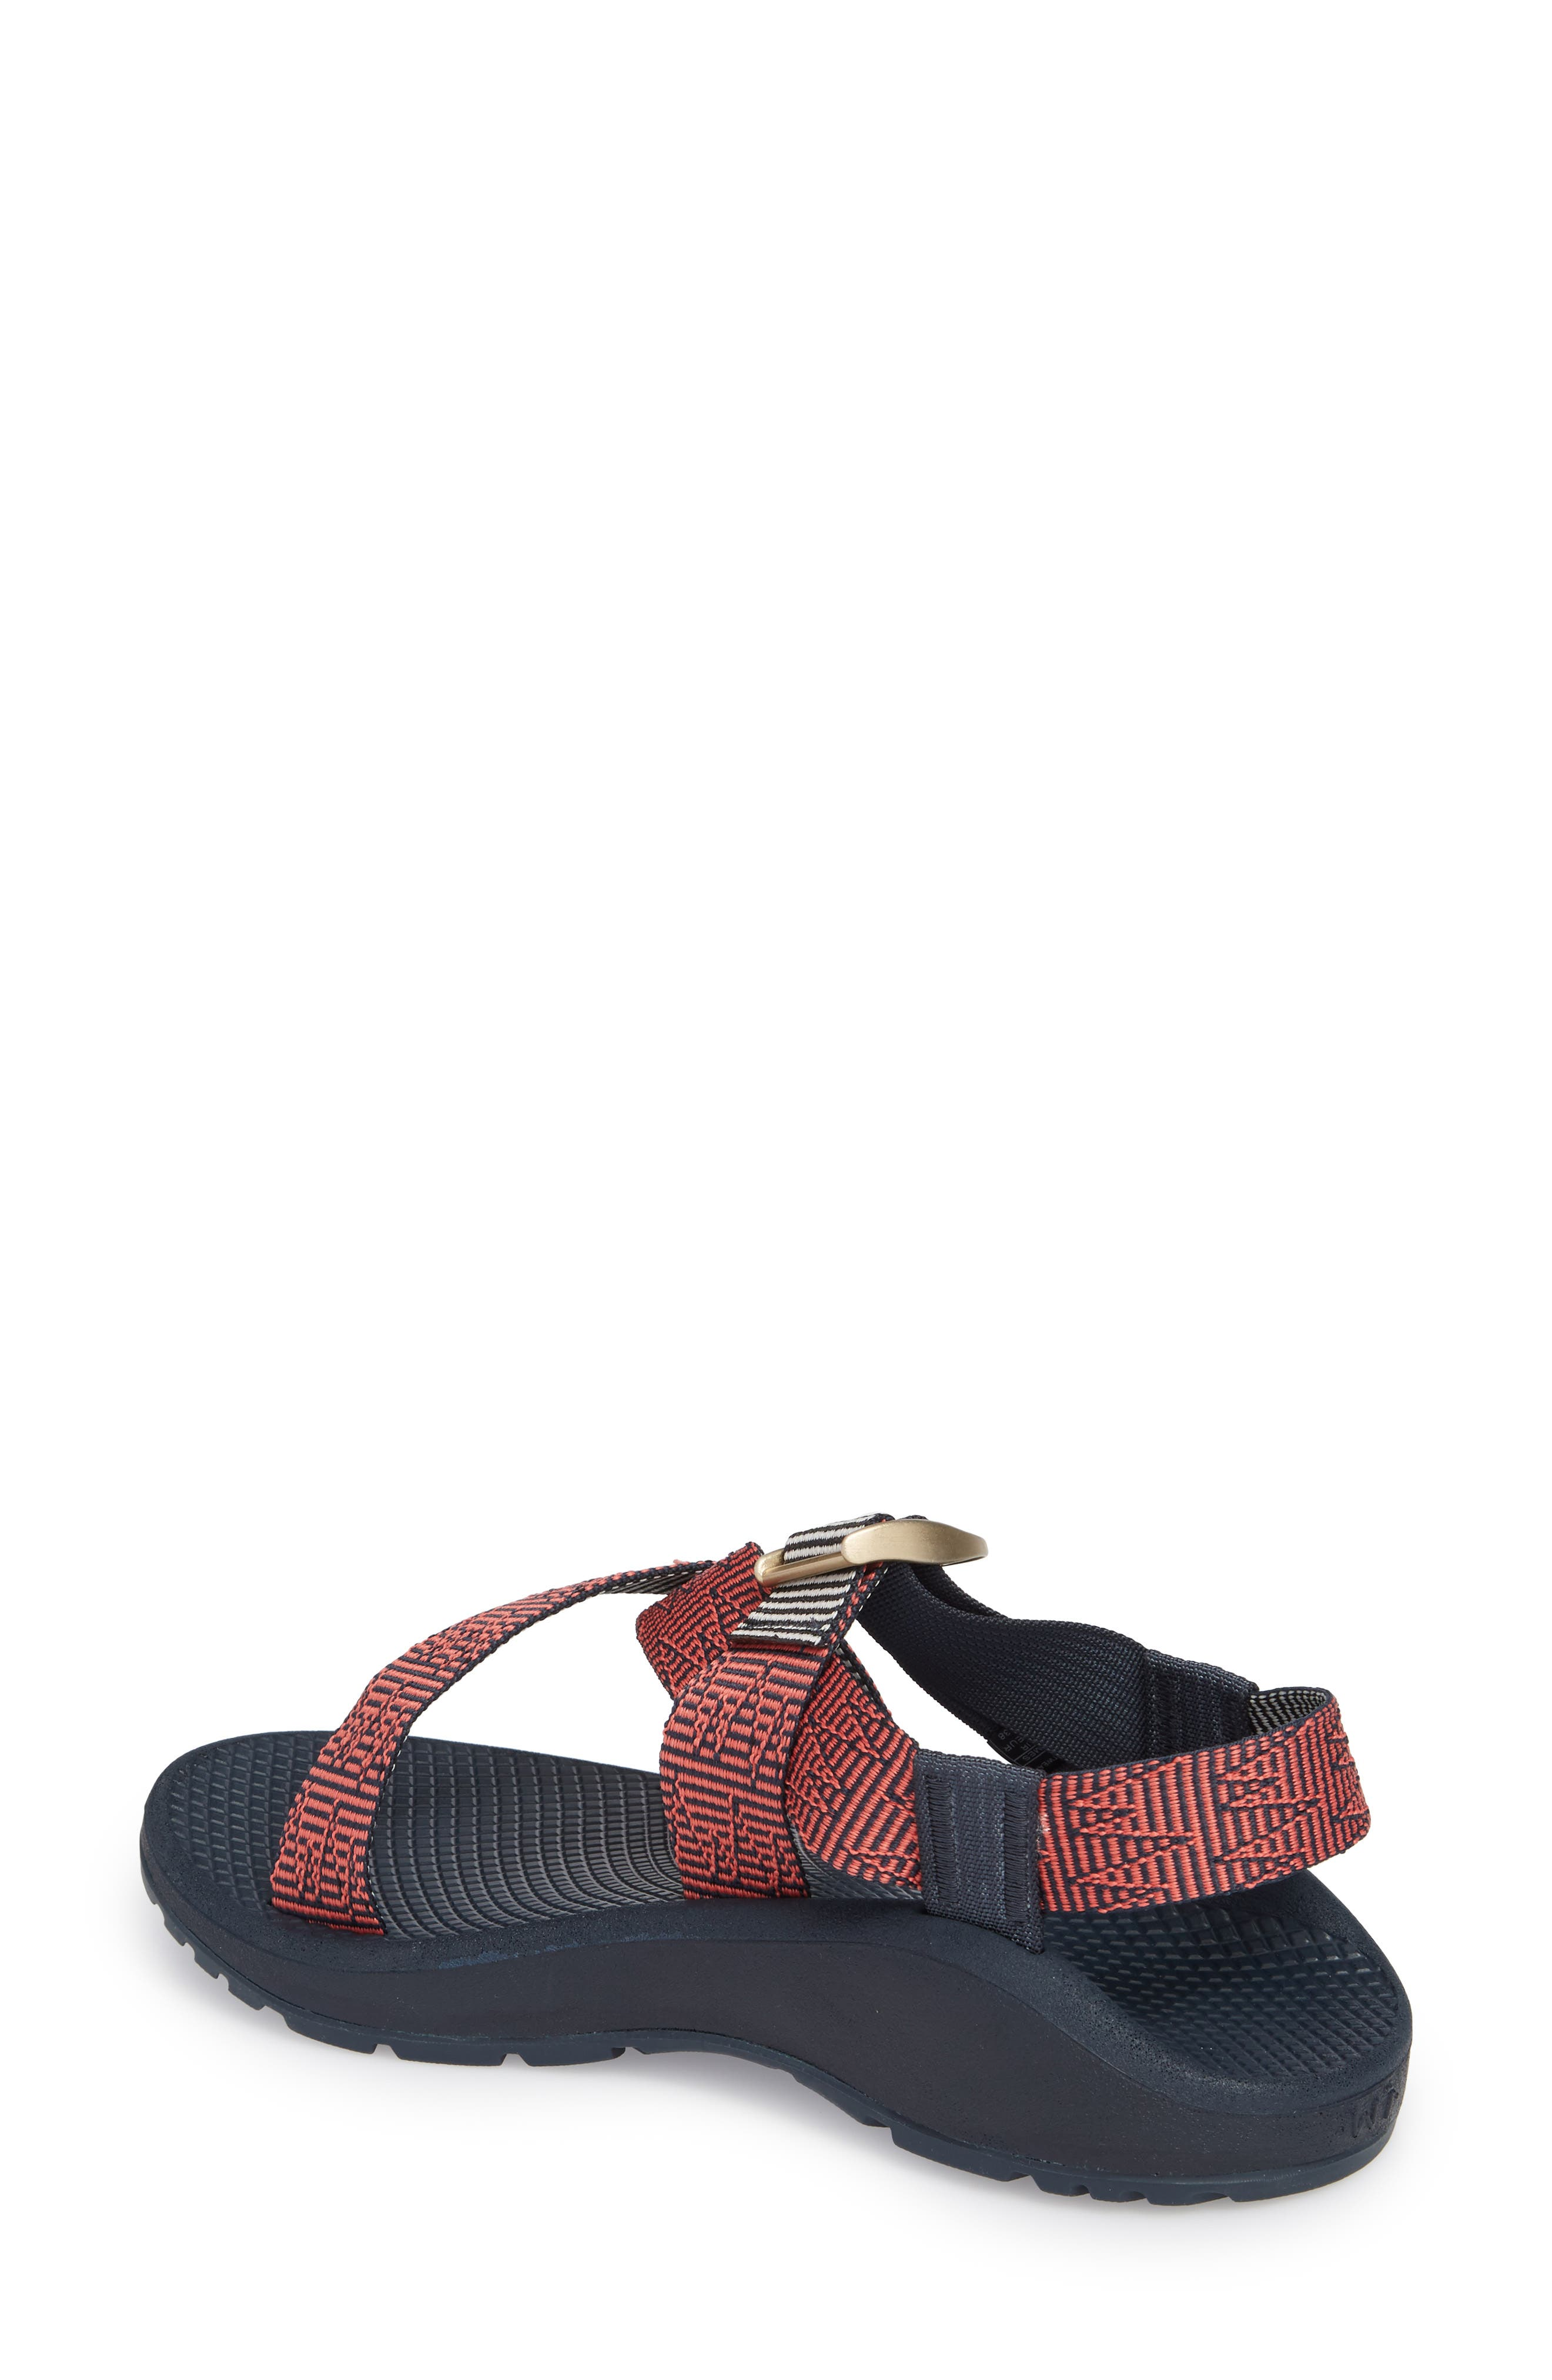 Mega Z/Cloud Sport Sandal,                             Alternate thumbnail 2, color,                             Blazer Navy